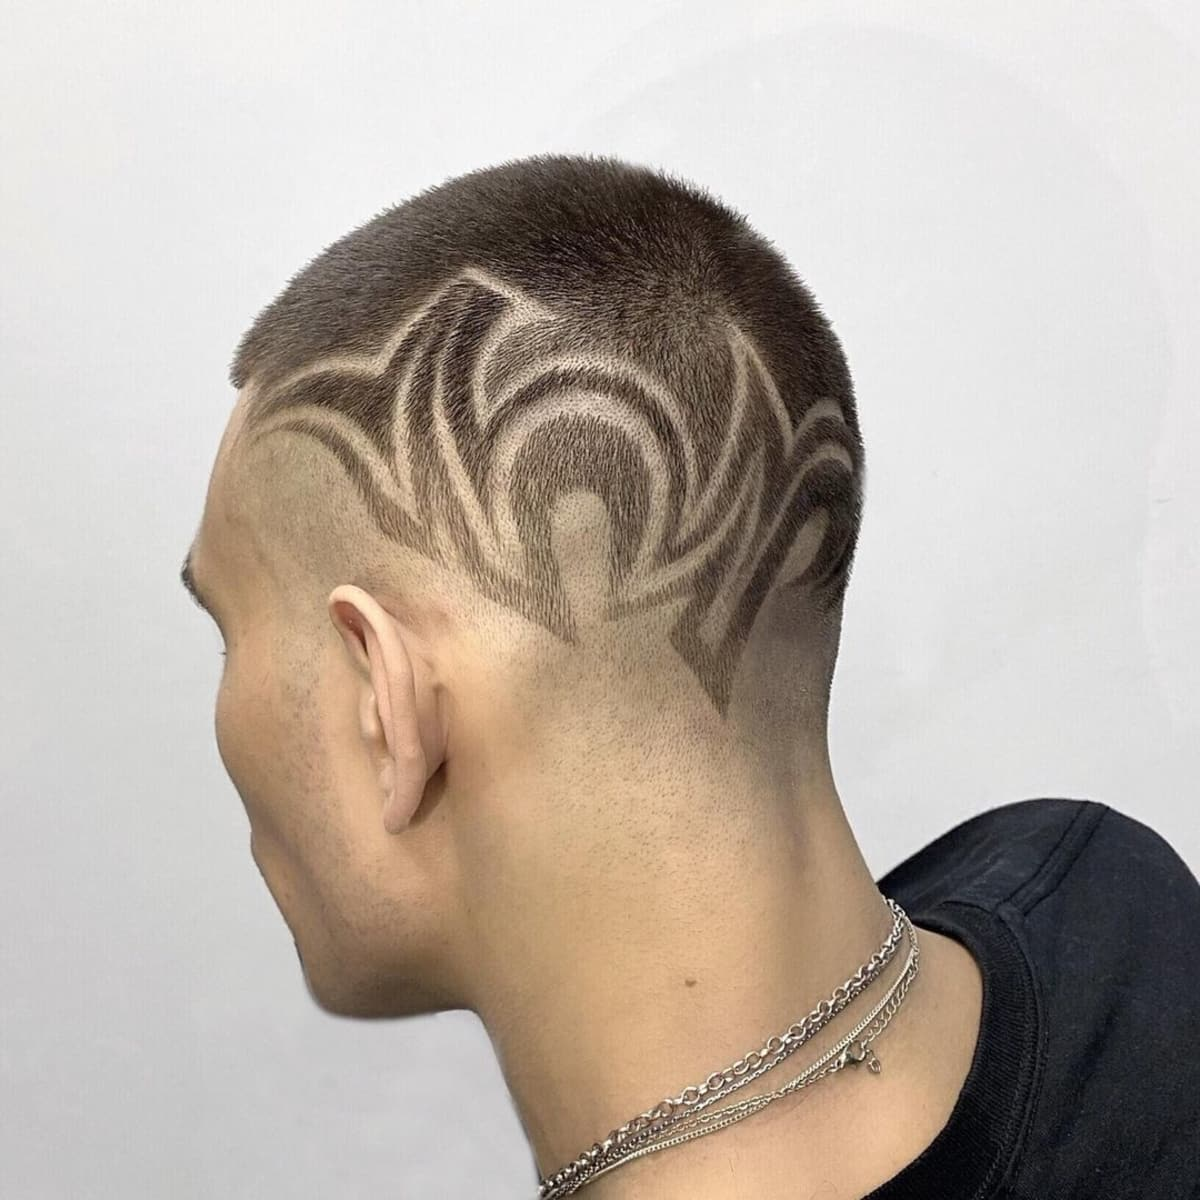 The 17 Coolest Hair Designs for Men This Year